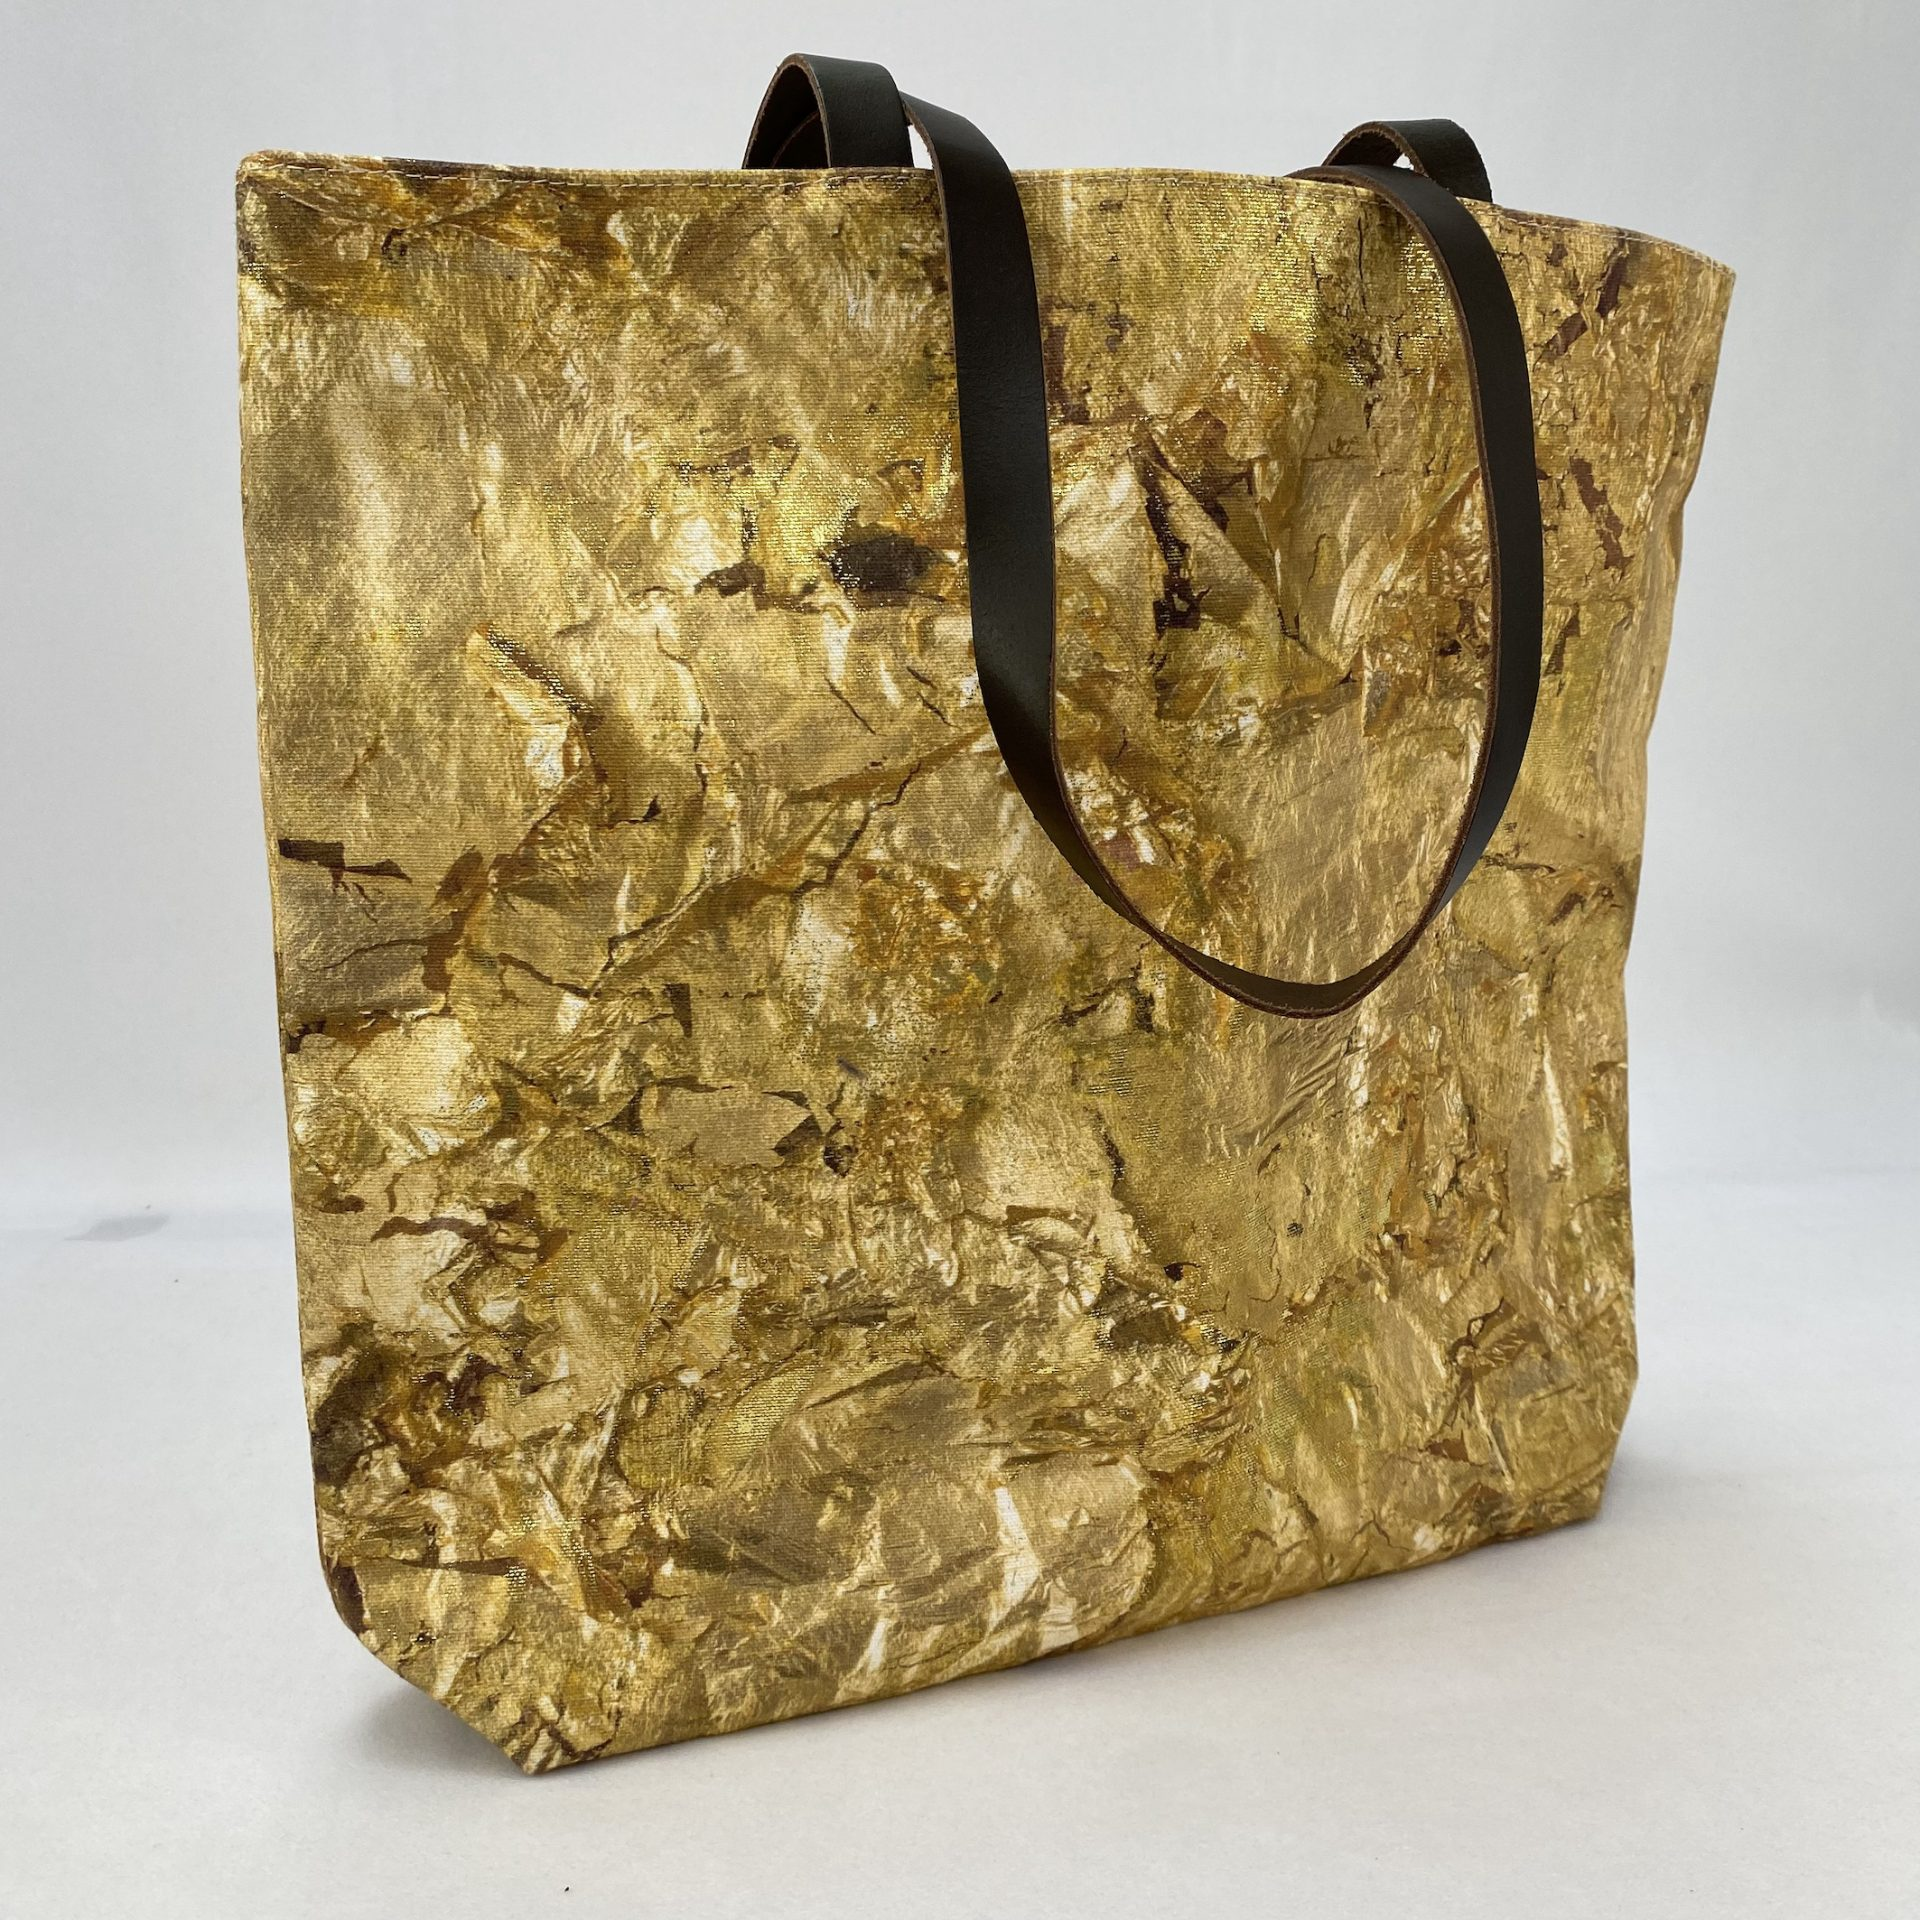 Innovative gold foil printing onto a digitally printed tote bag of a Rauschenberg artwork for the Tate